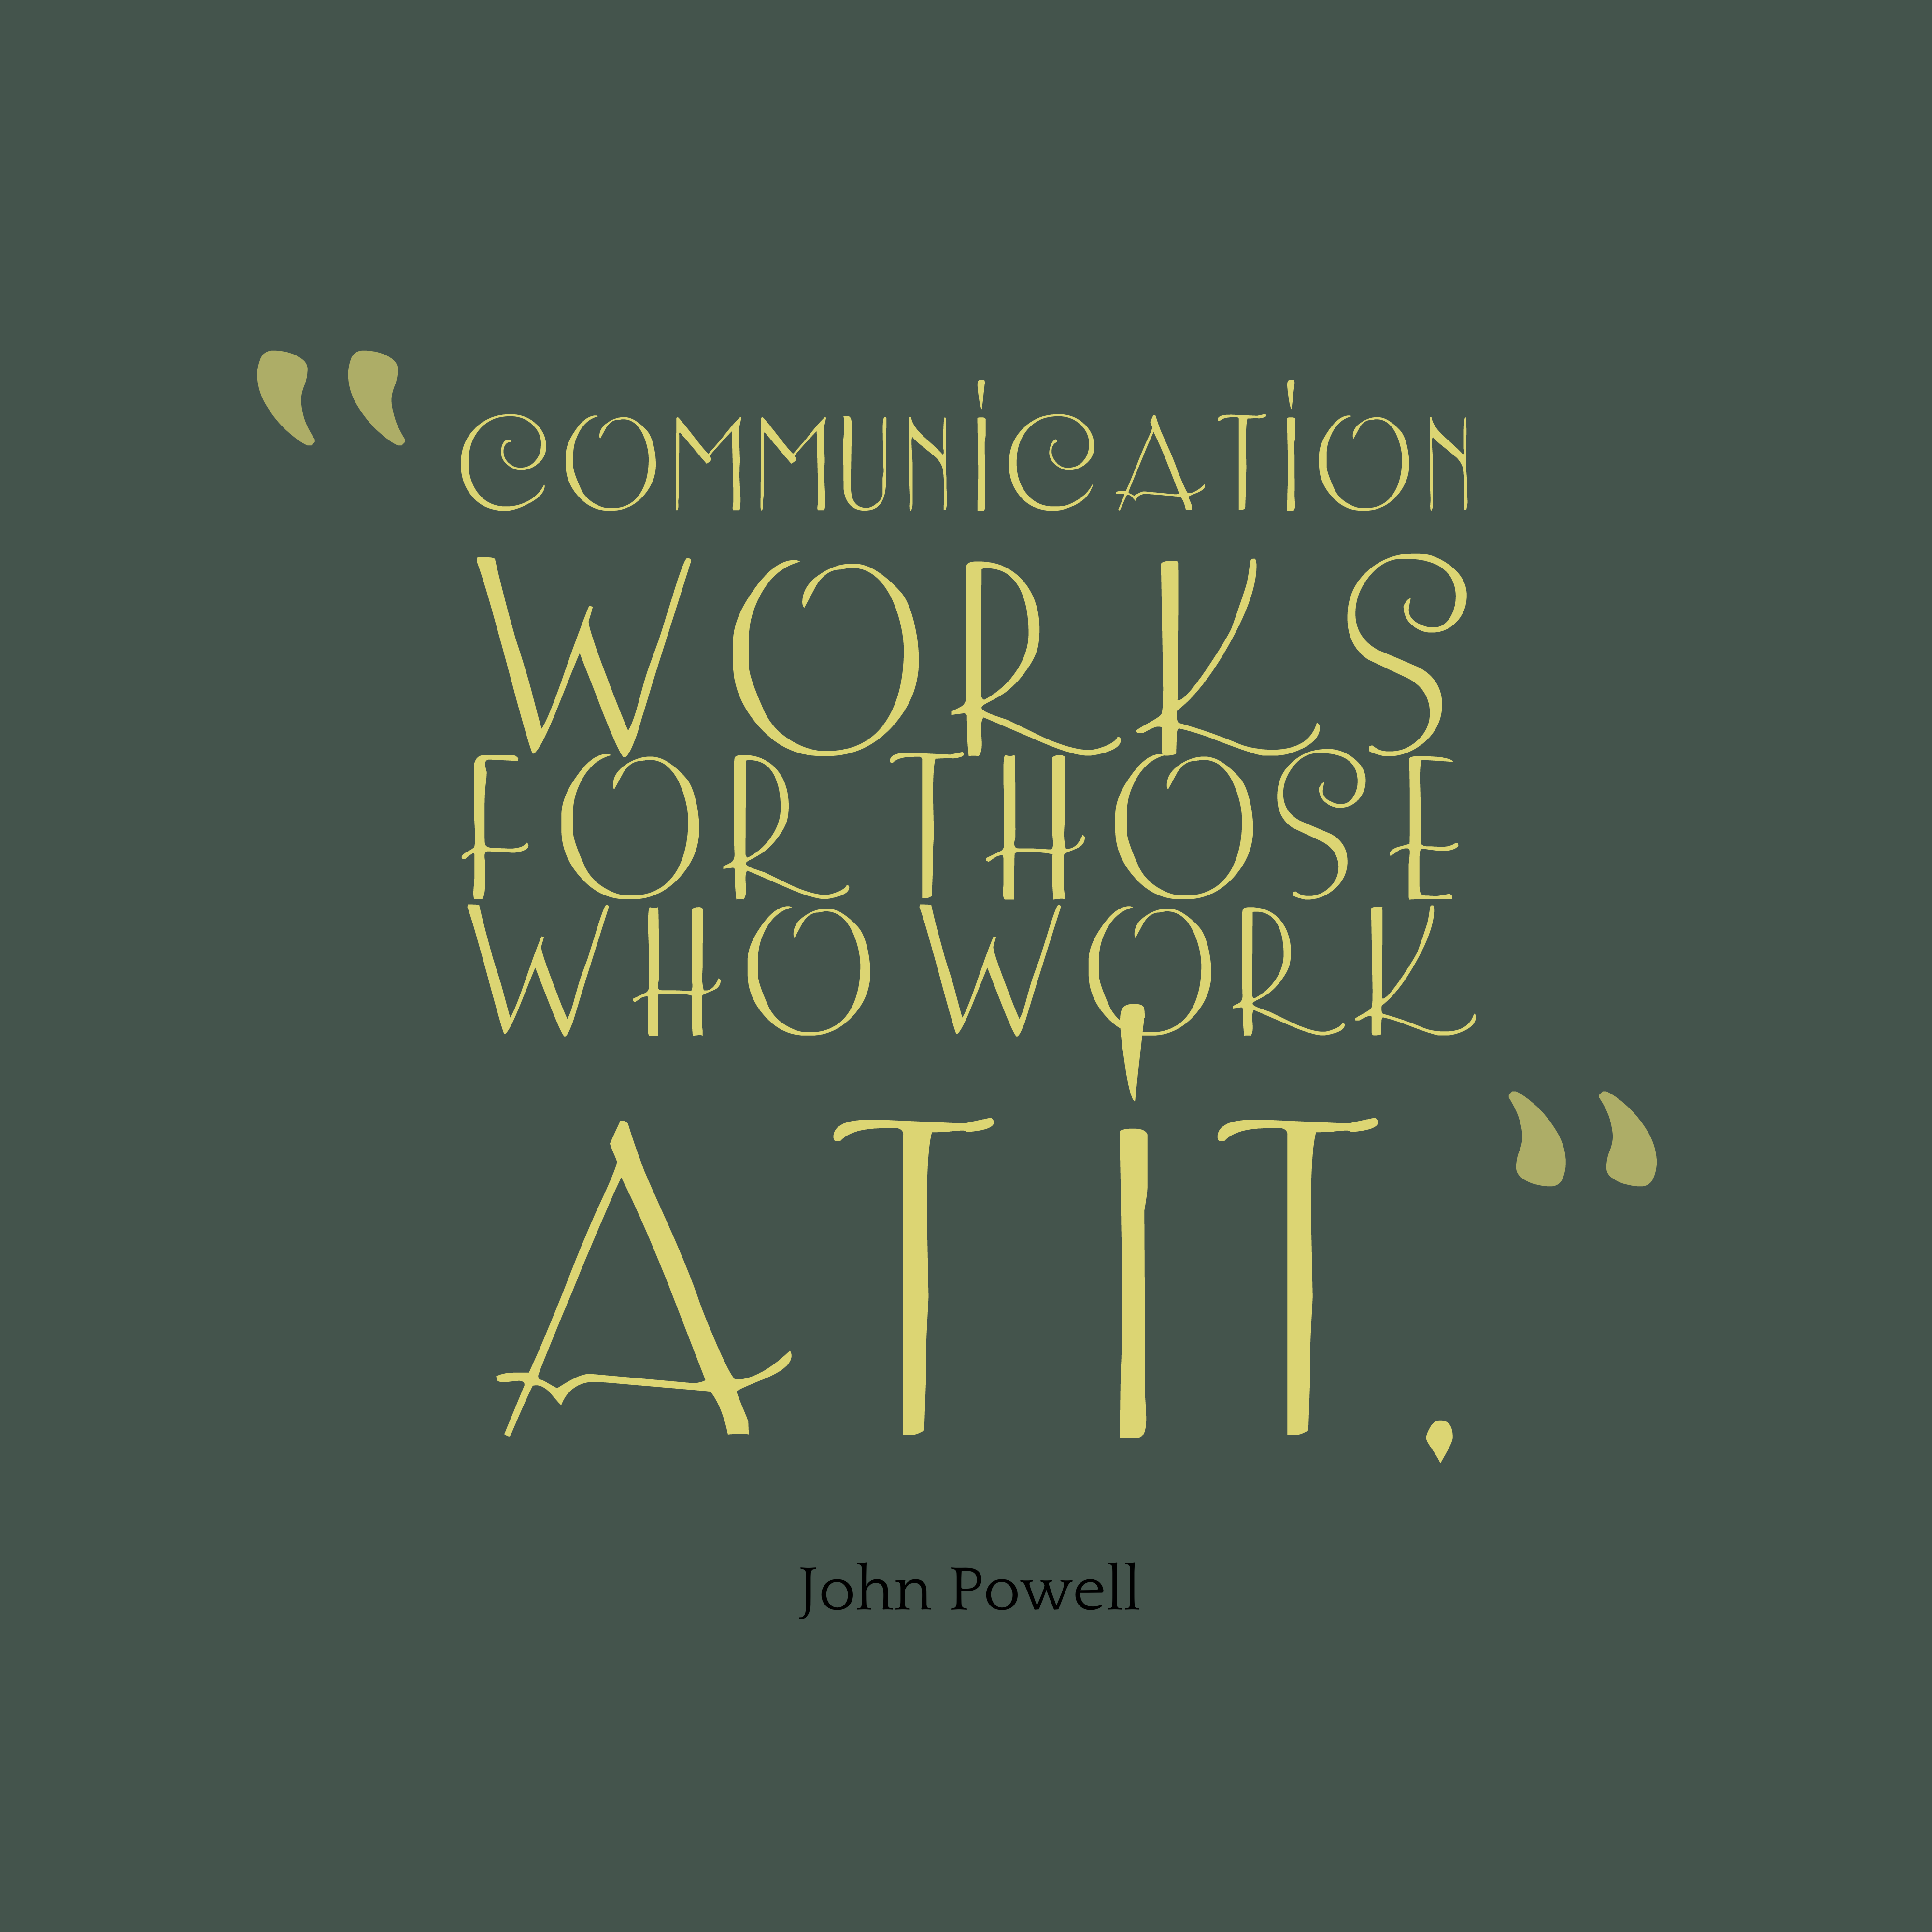 """Communication Works For Those Who Work Atit"" - John Powell"